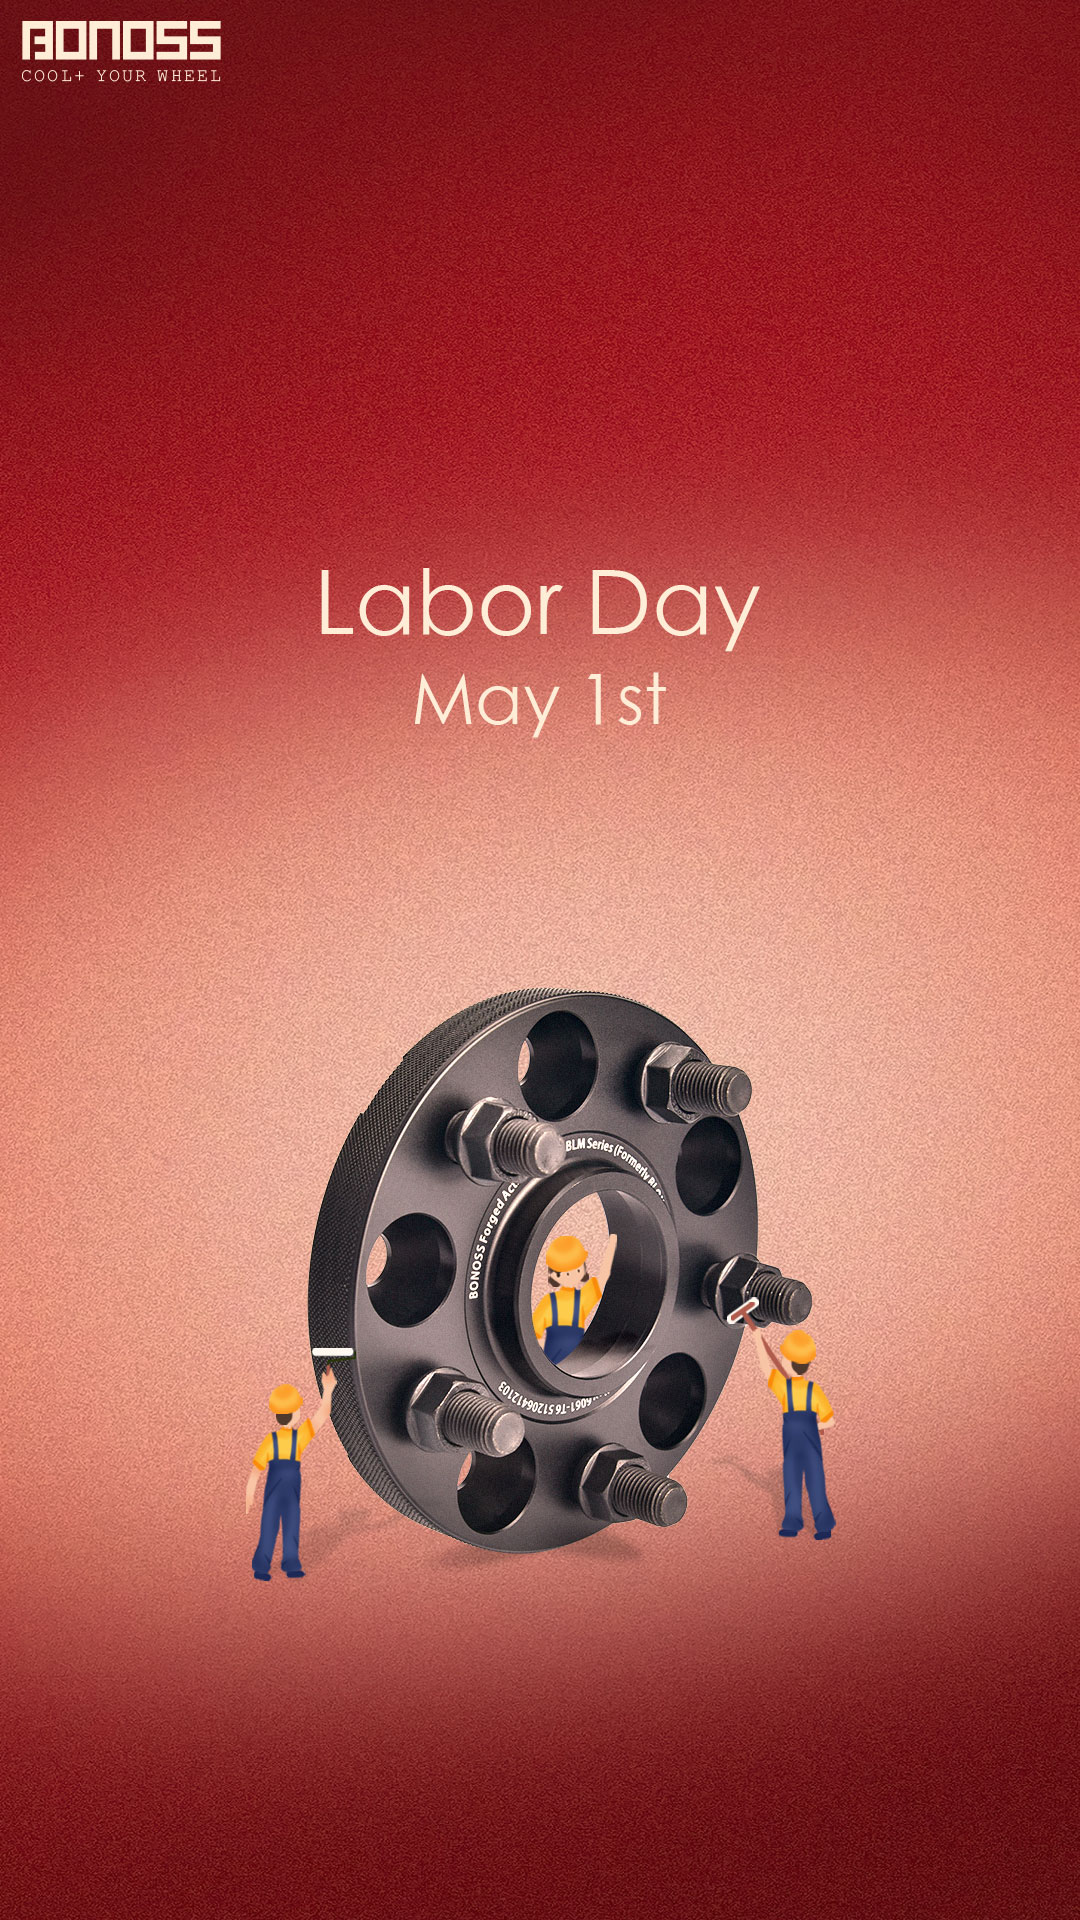 Happy Labor Day! Celebrate with BONOSS